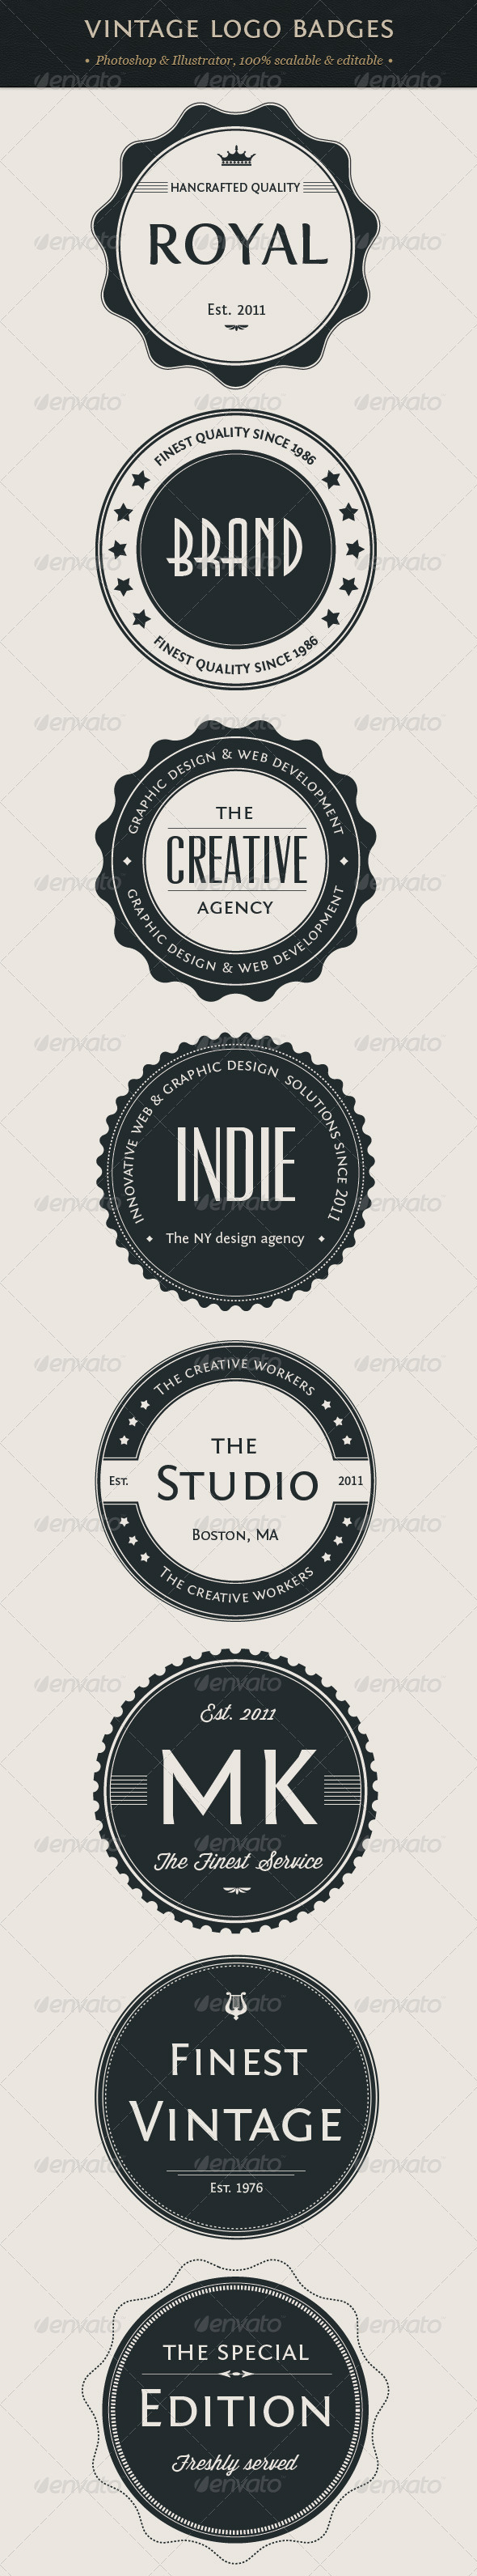 Vintage Logo Badges Set - Badges &amp; Stickers Web Elements